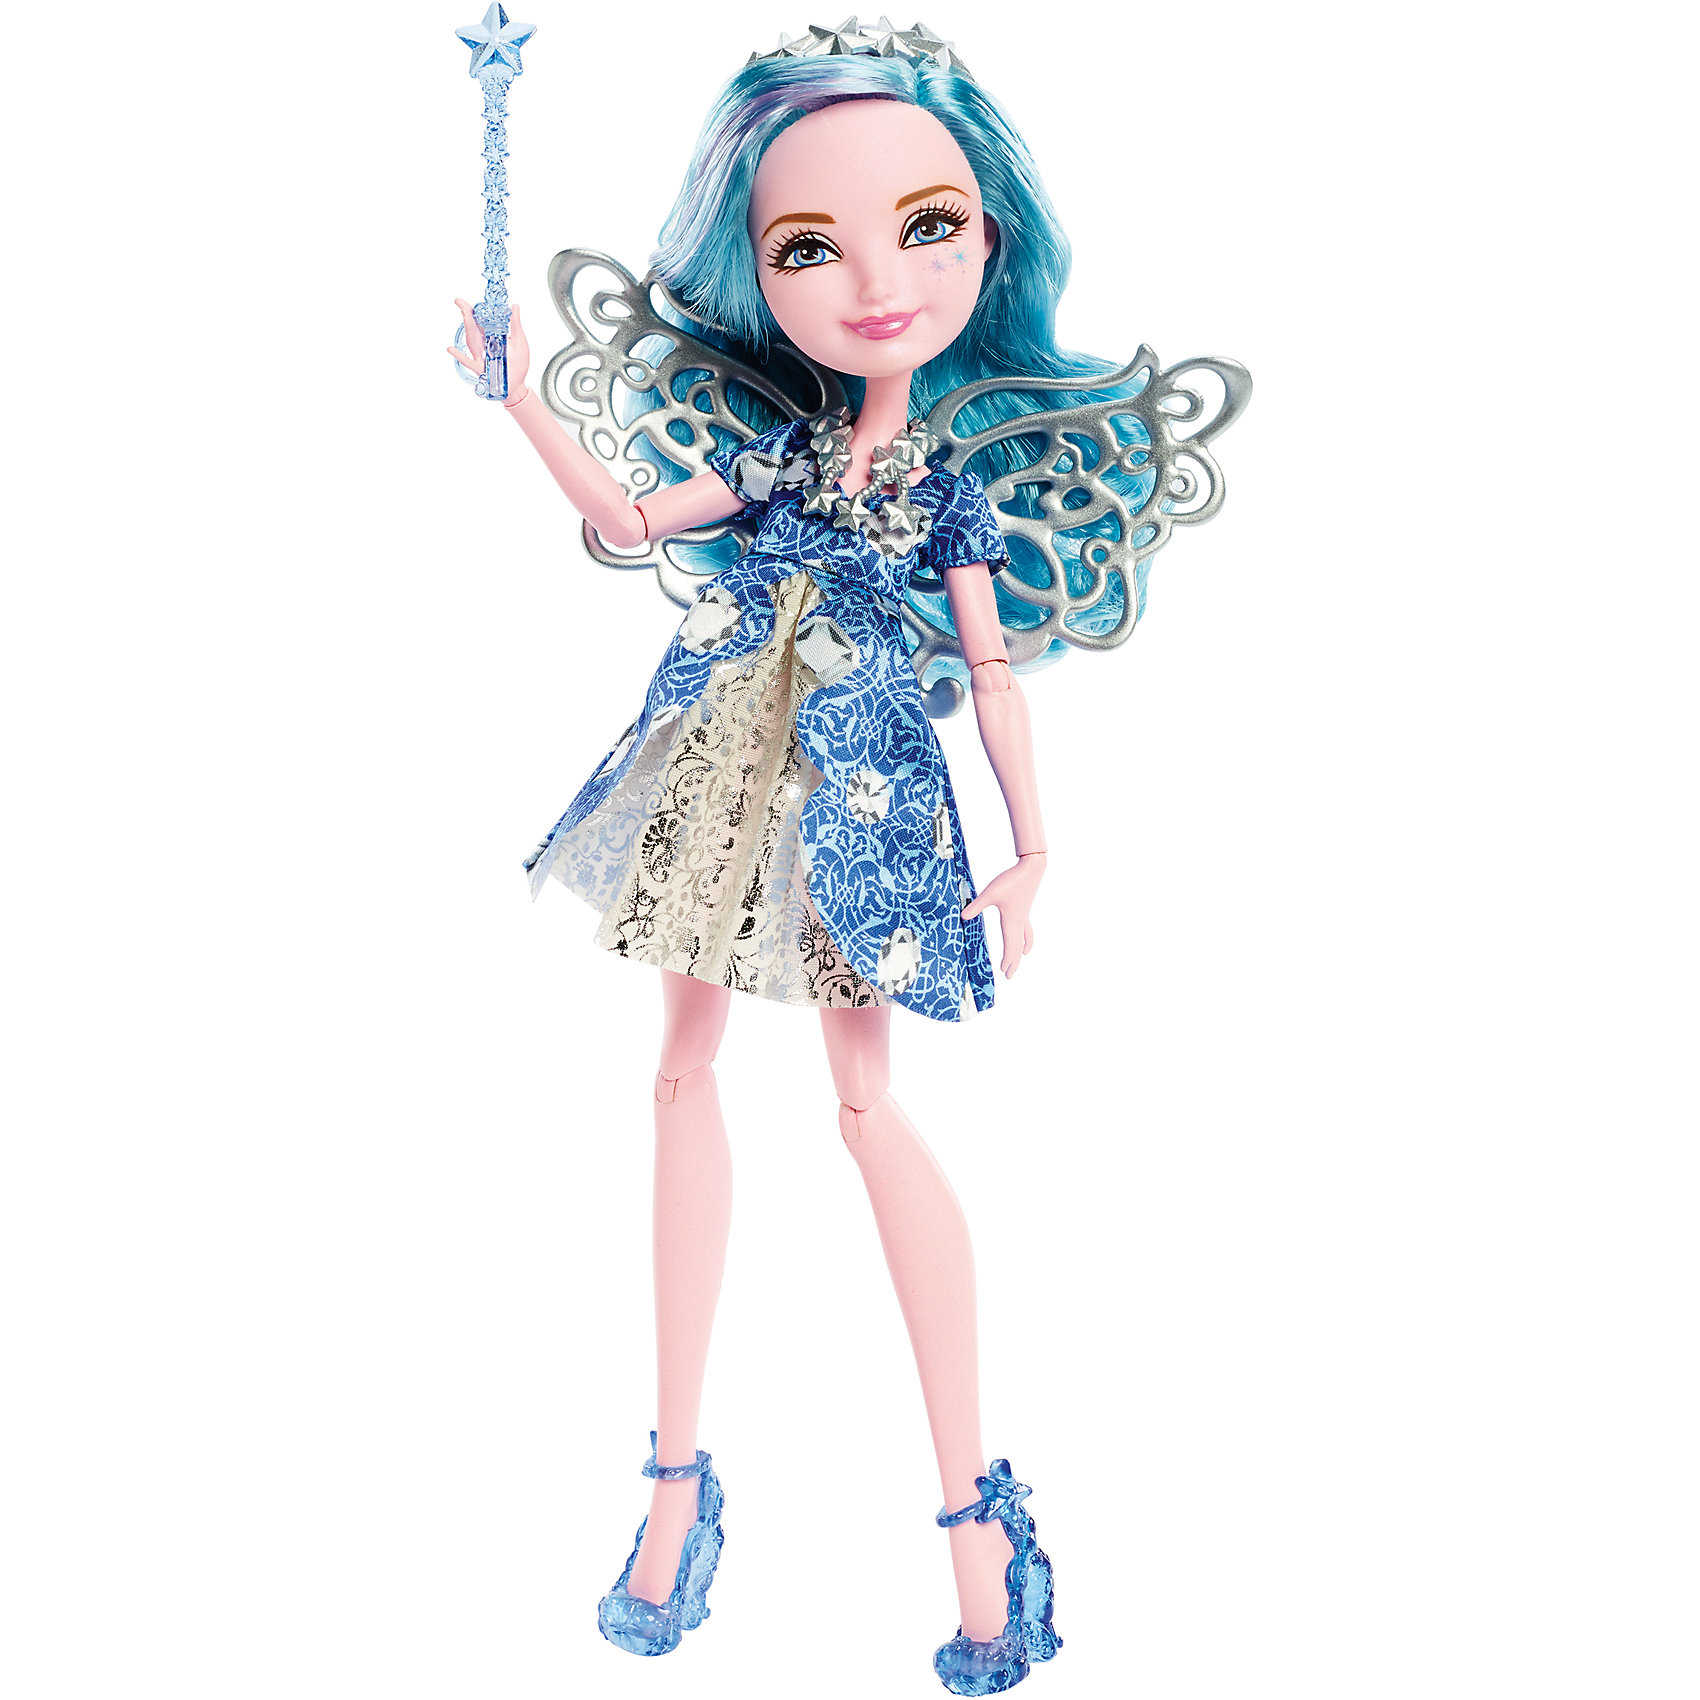 Mattel Кукла Фарра Гудфэйри, Ever After High mattel ever after high dvh81 куклы лучницы банни бланк